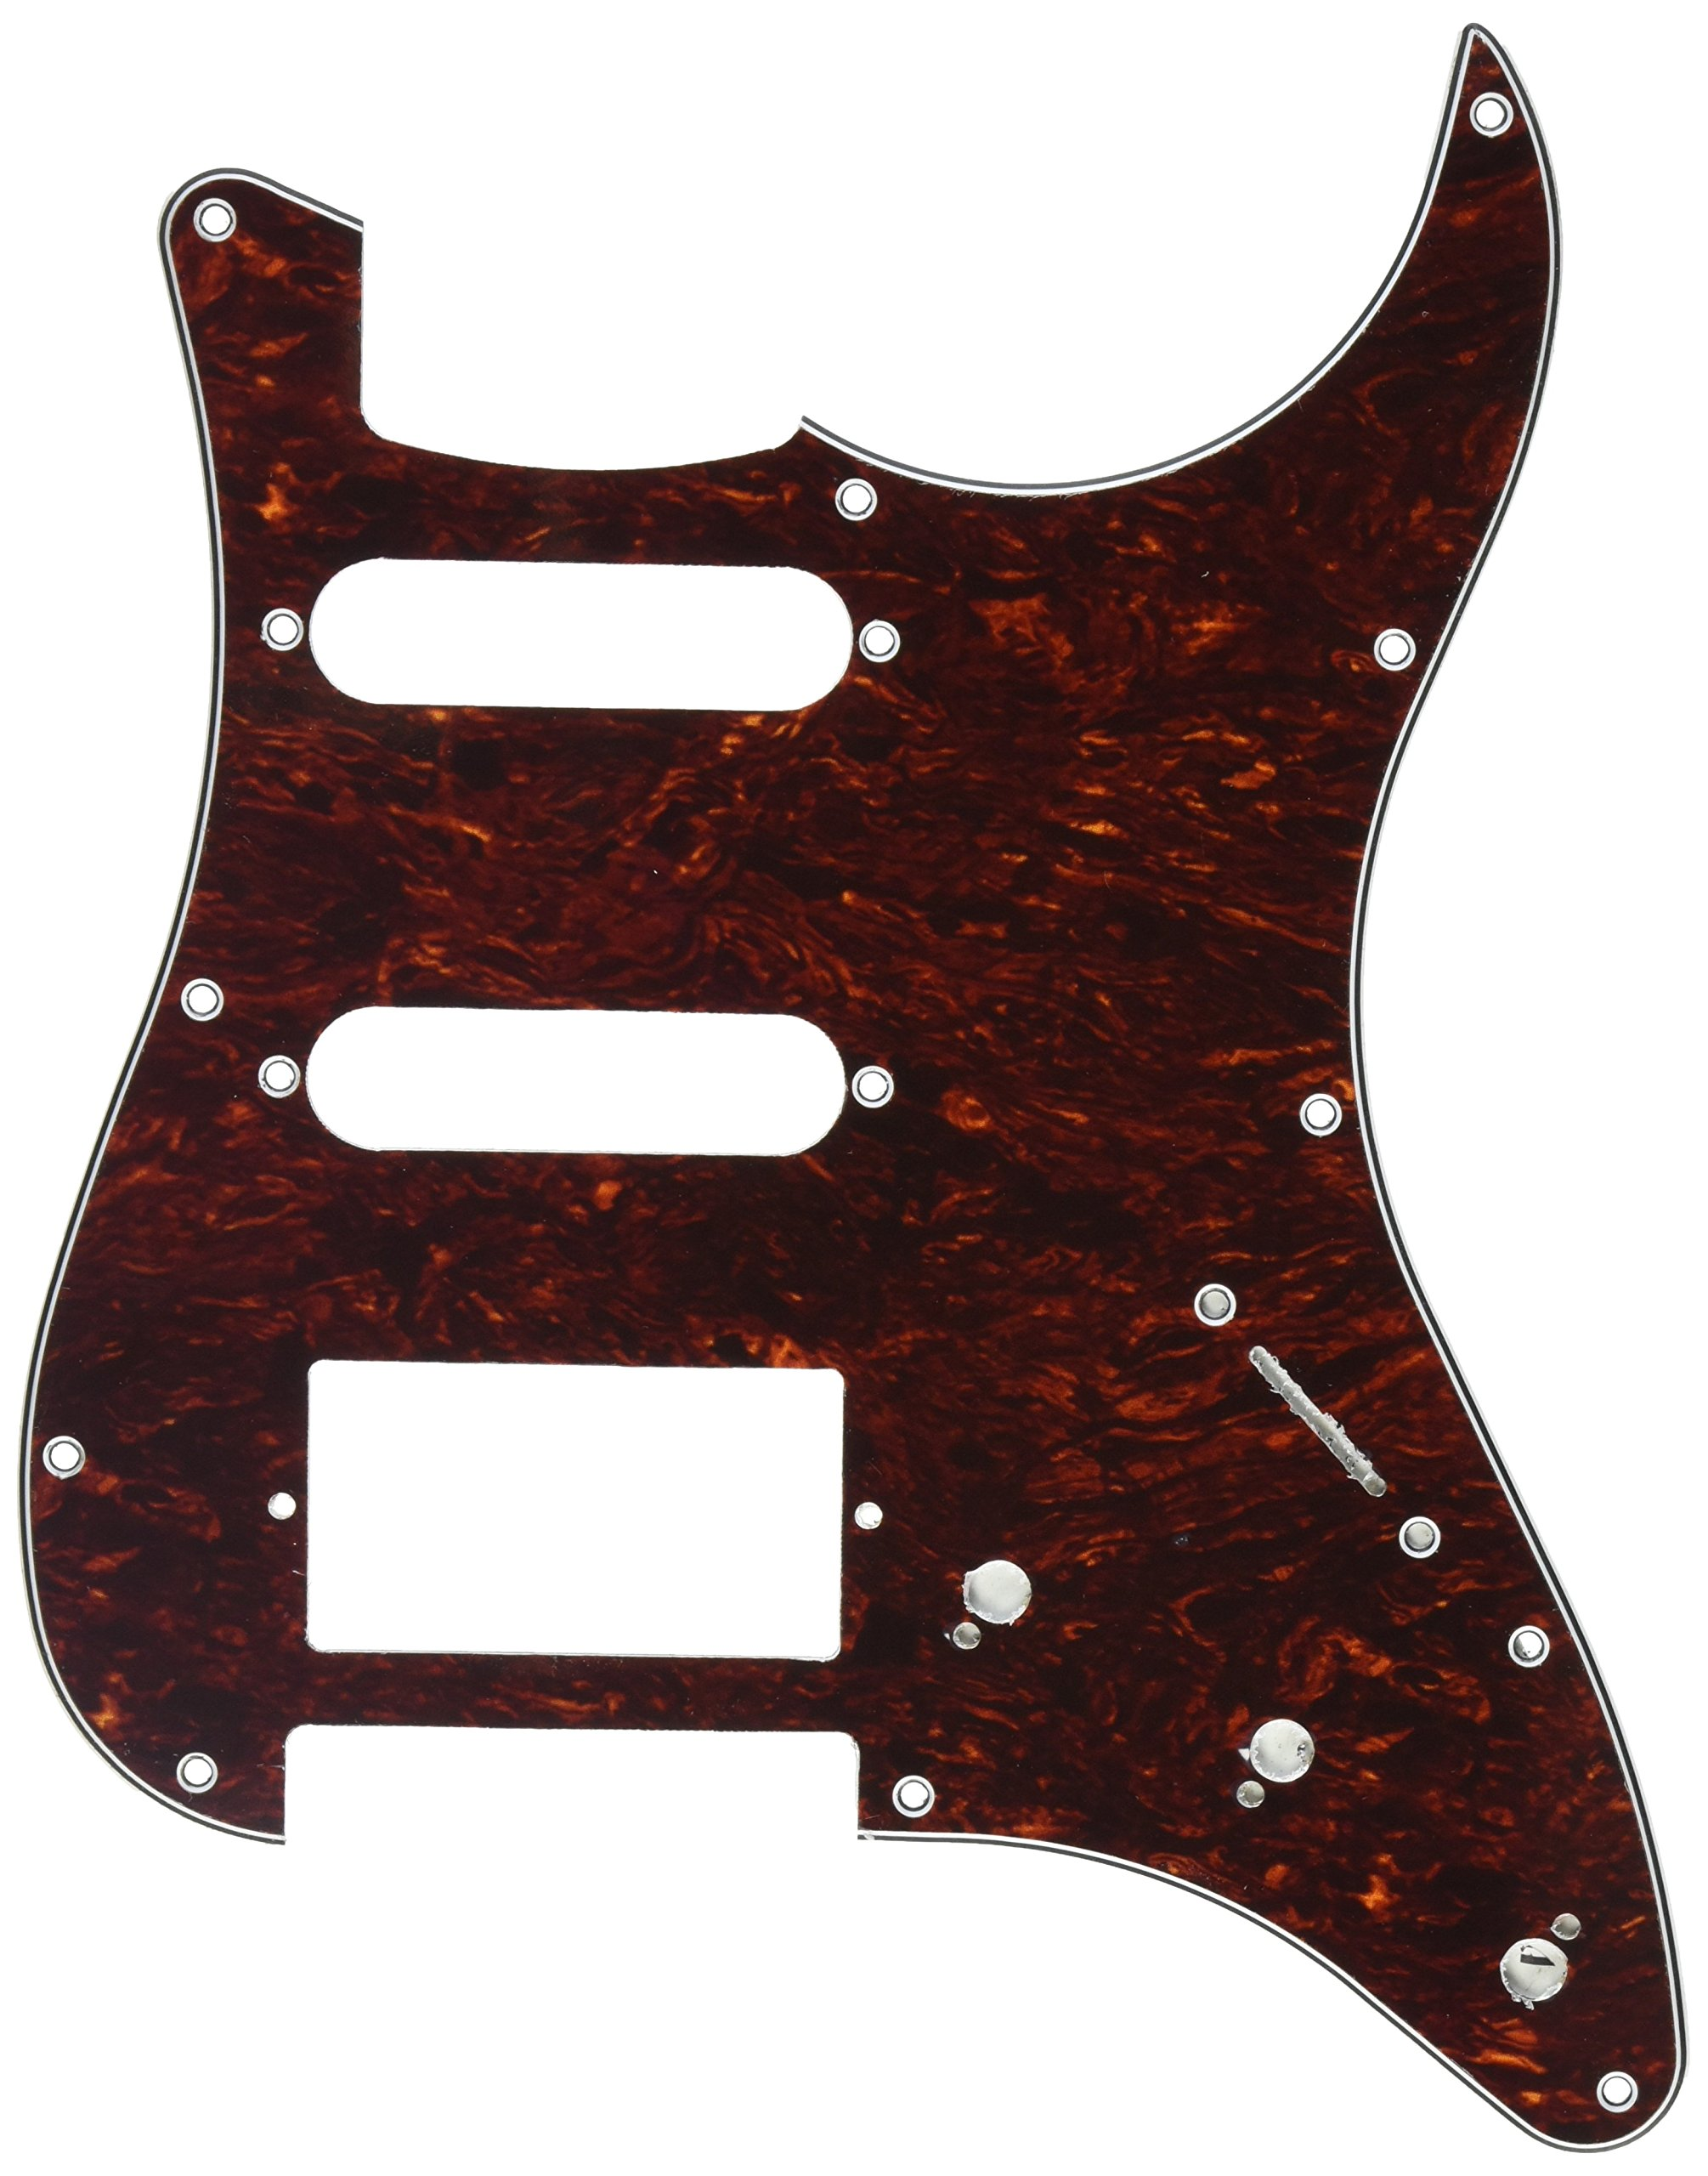 Kmise A0233 1 Piece Tortoise Guitar Pickguard Shell for Fender Strat ST Replacement Red